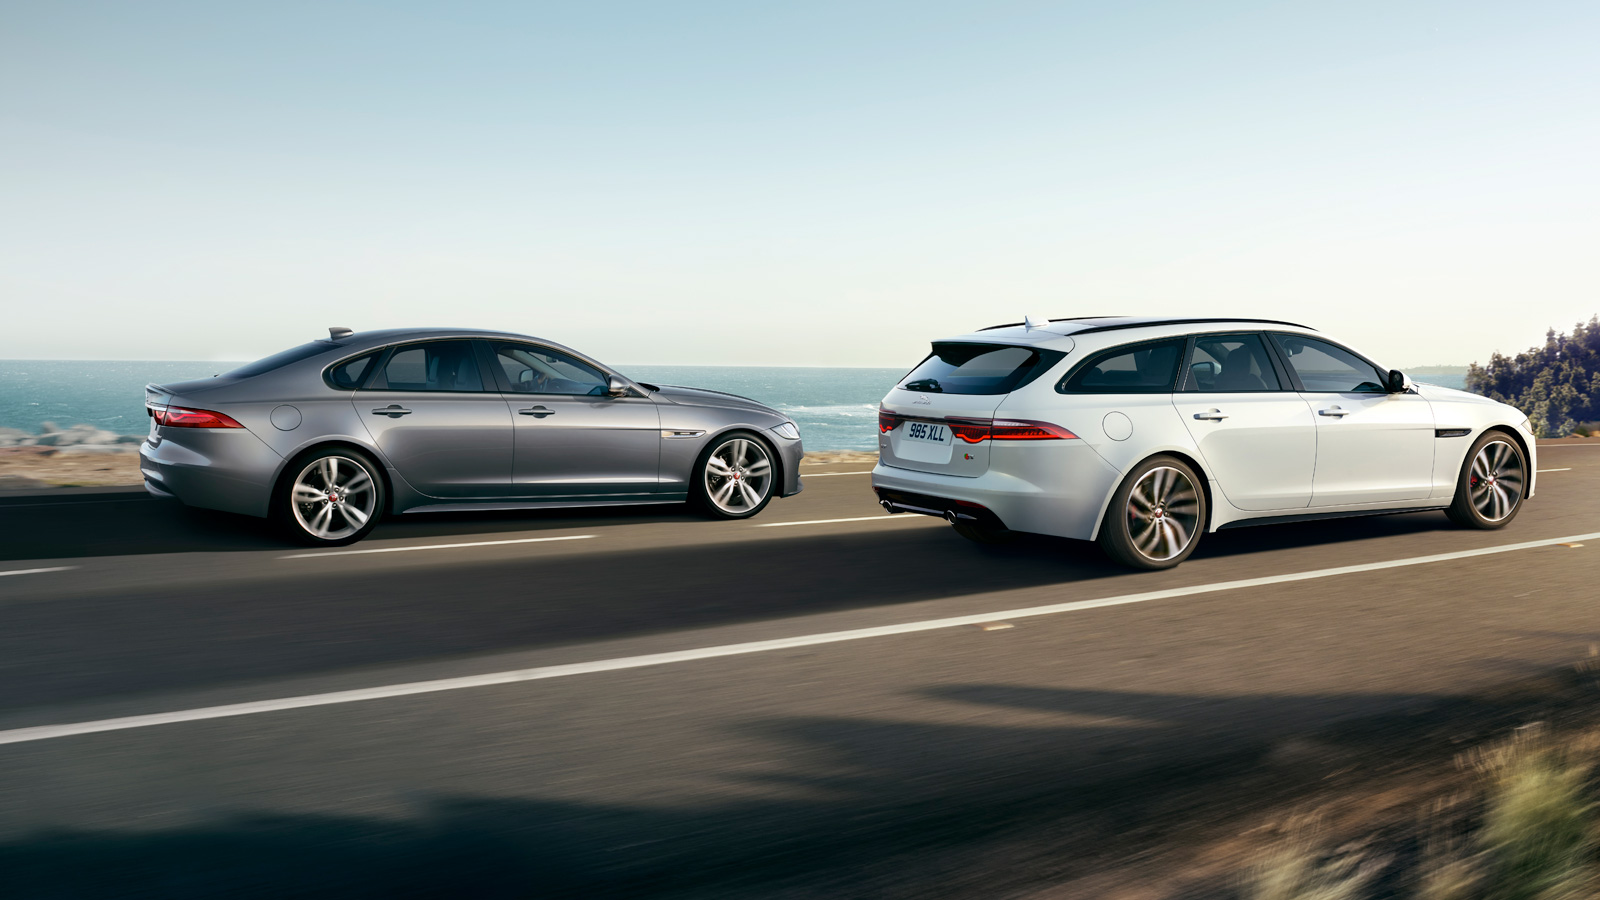 Jaguar XF Driving Along Road